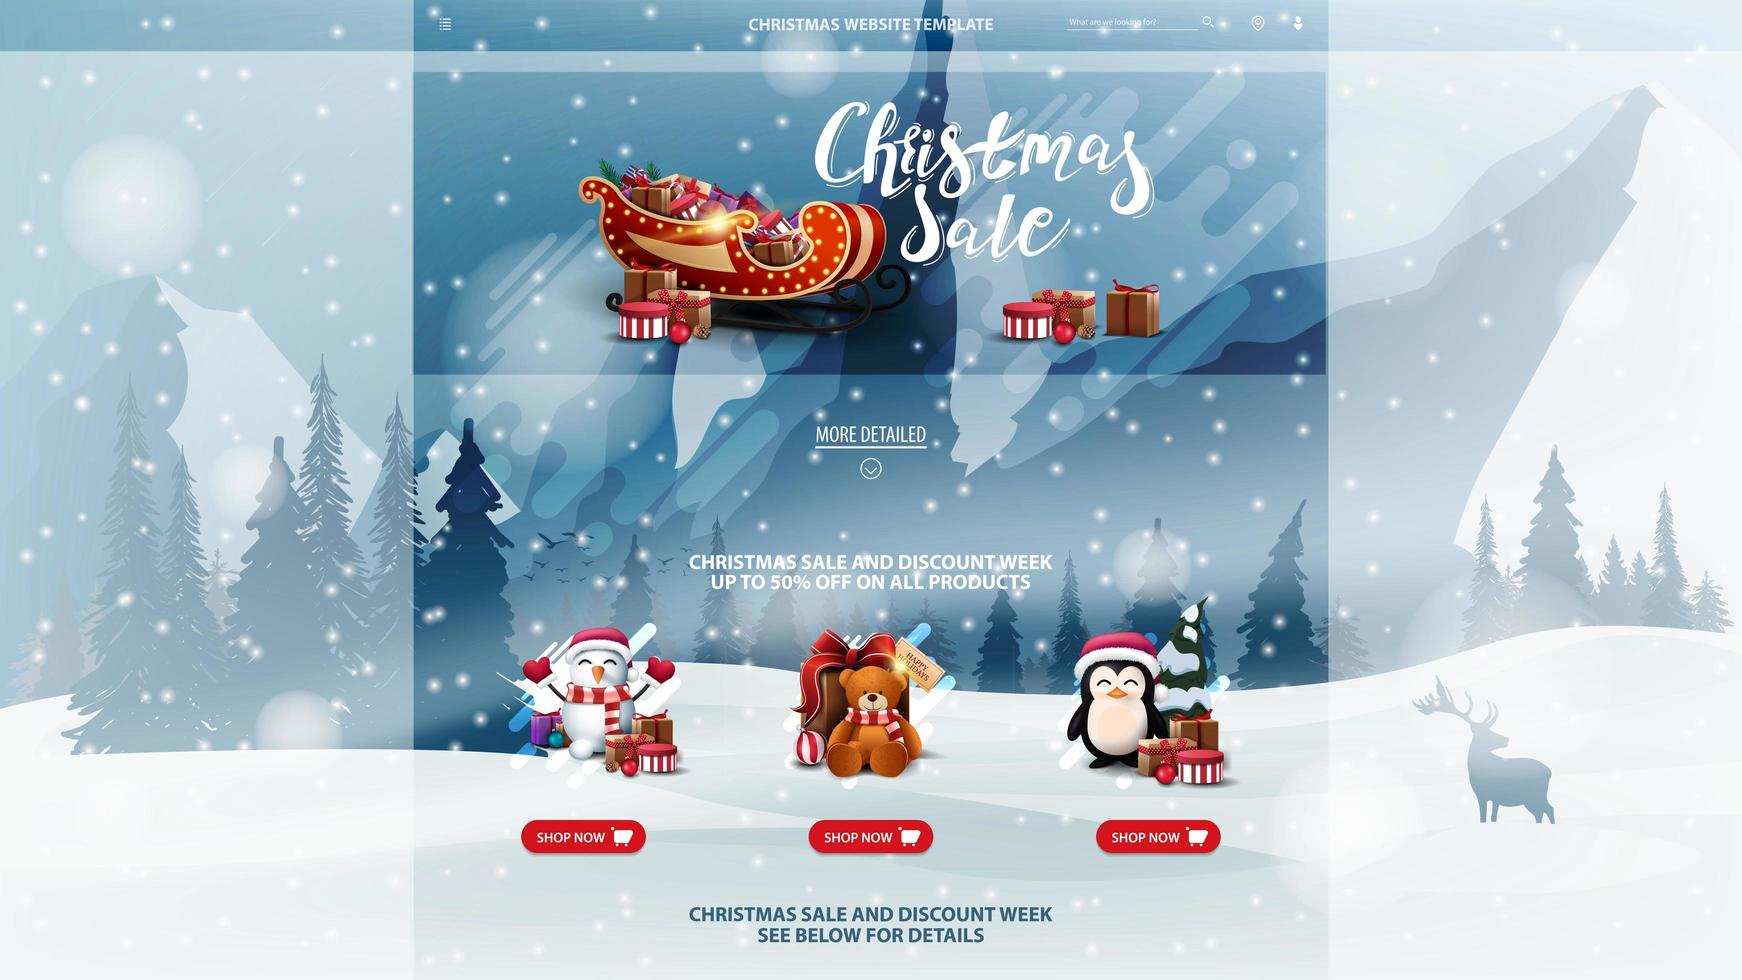 Christmas website template with winter landscape vector